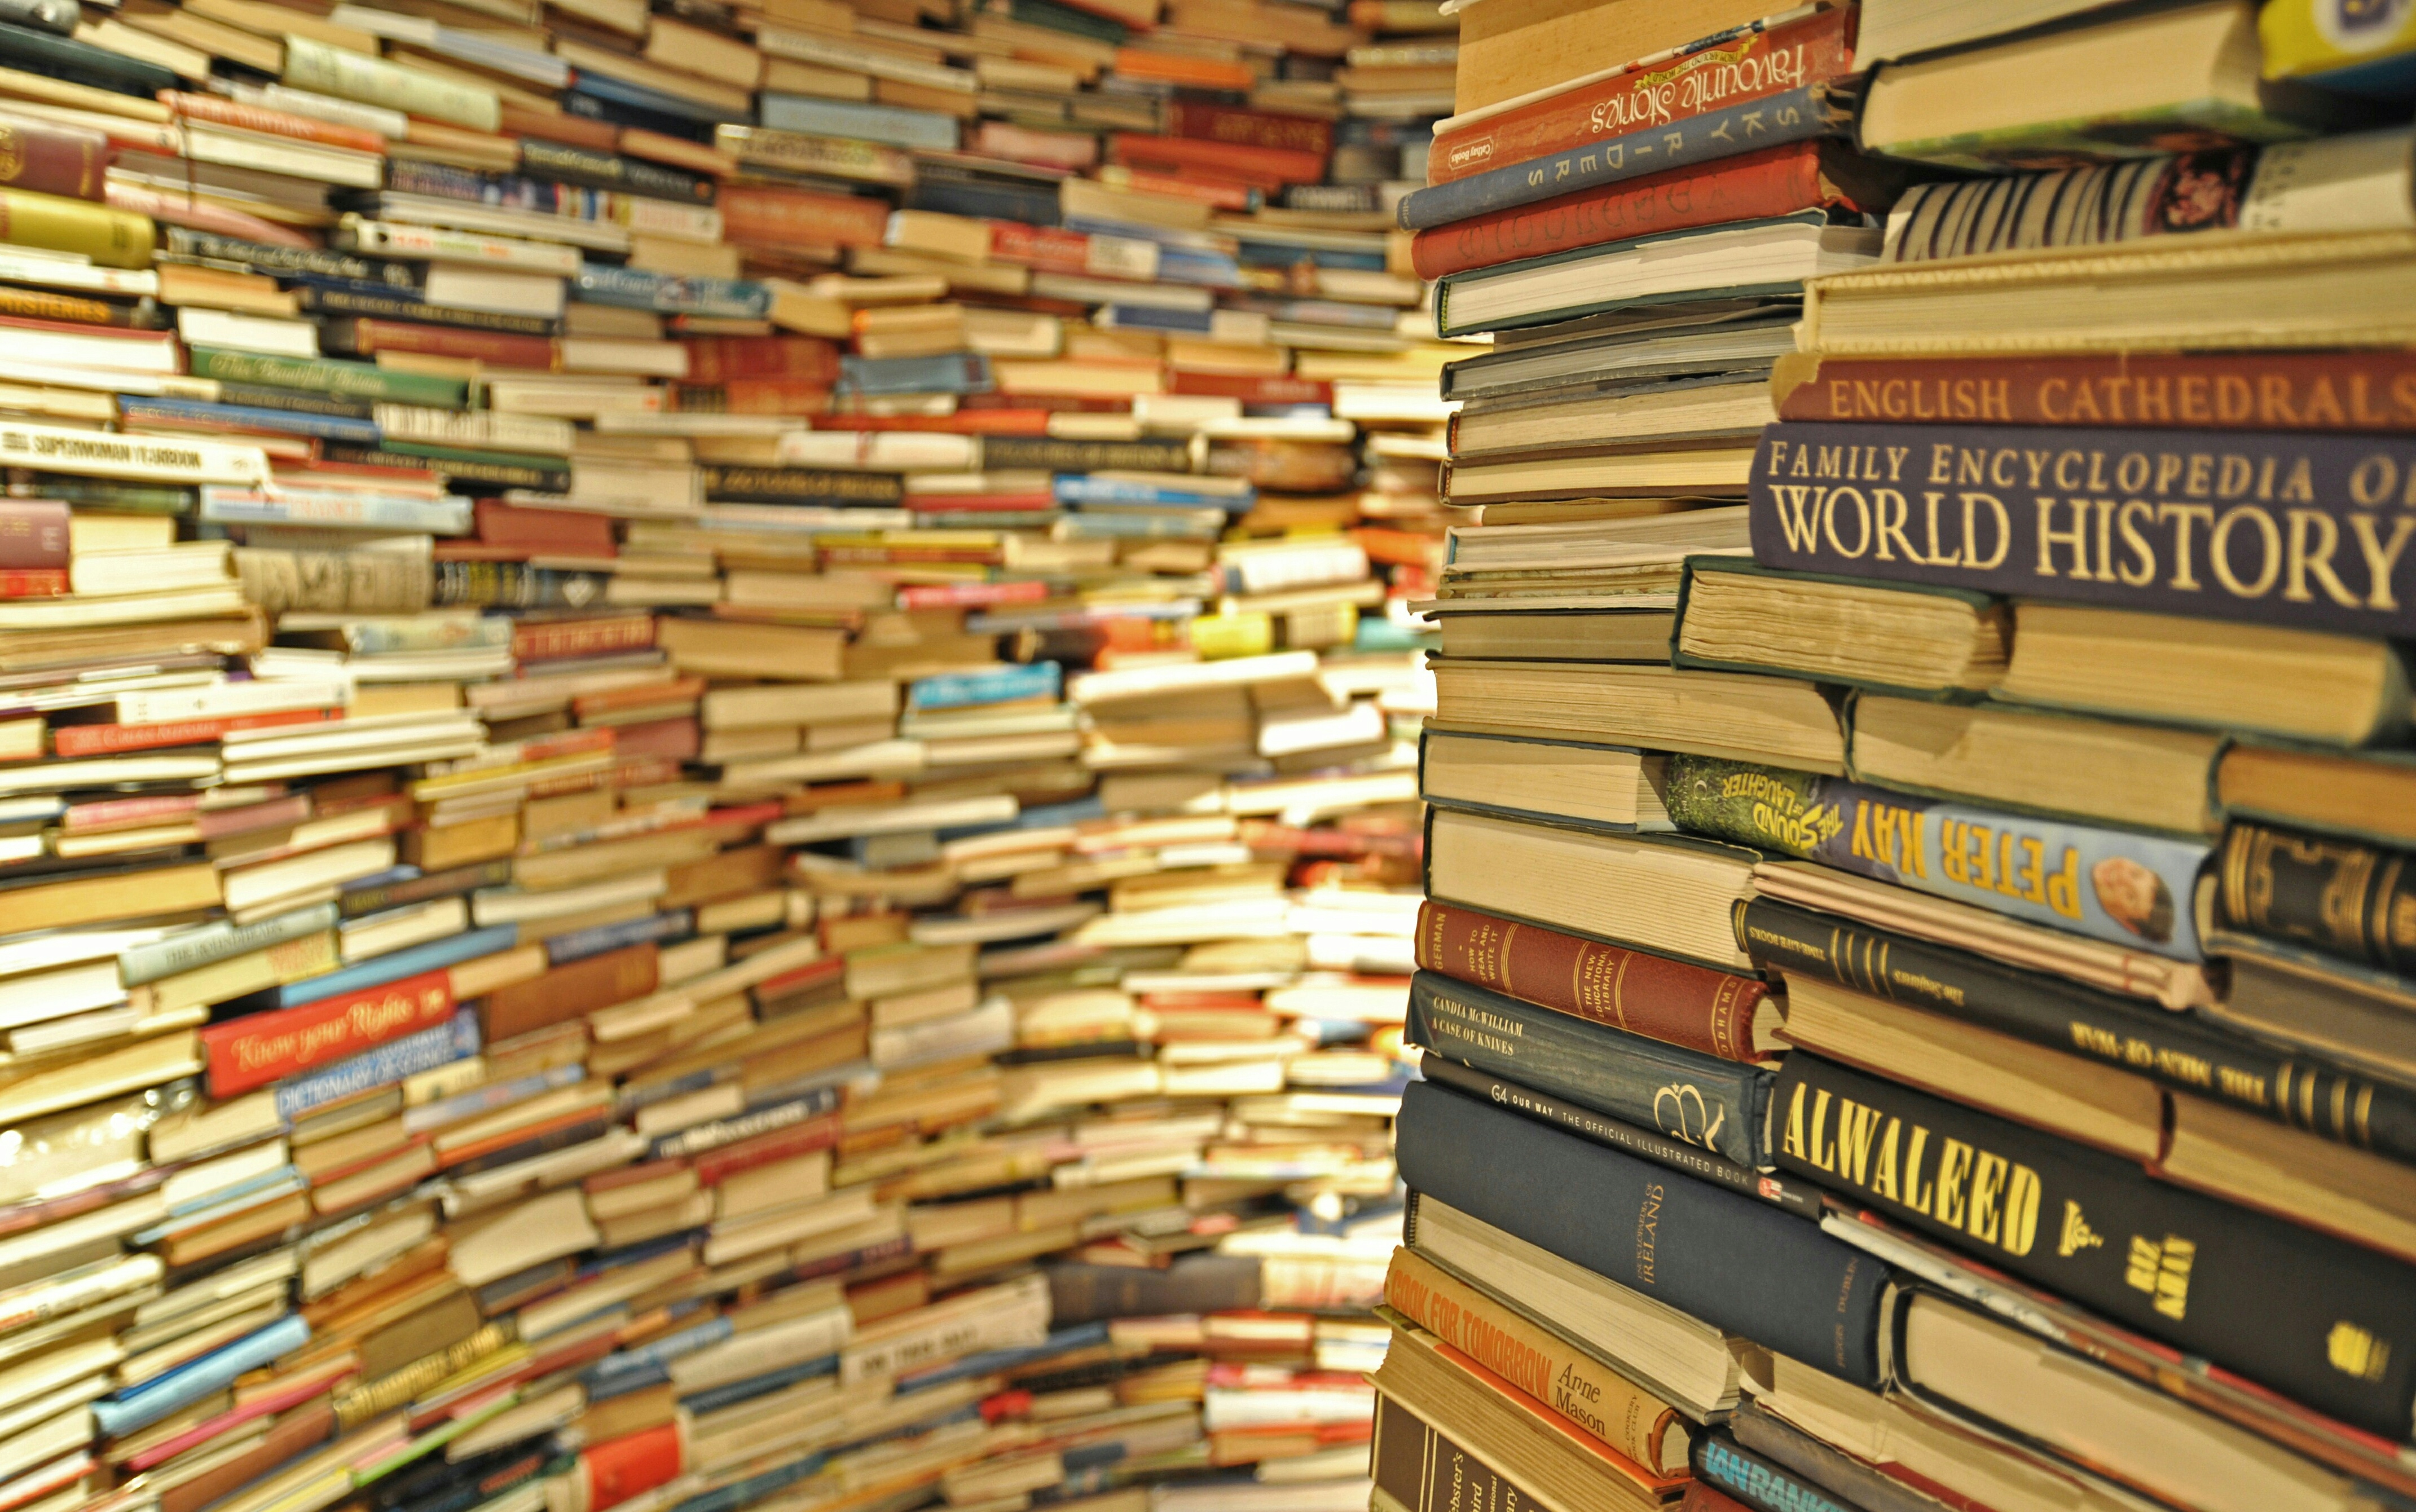 What's next for books? | TechCrunch